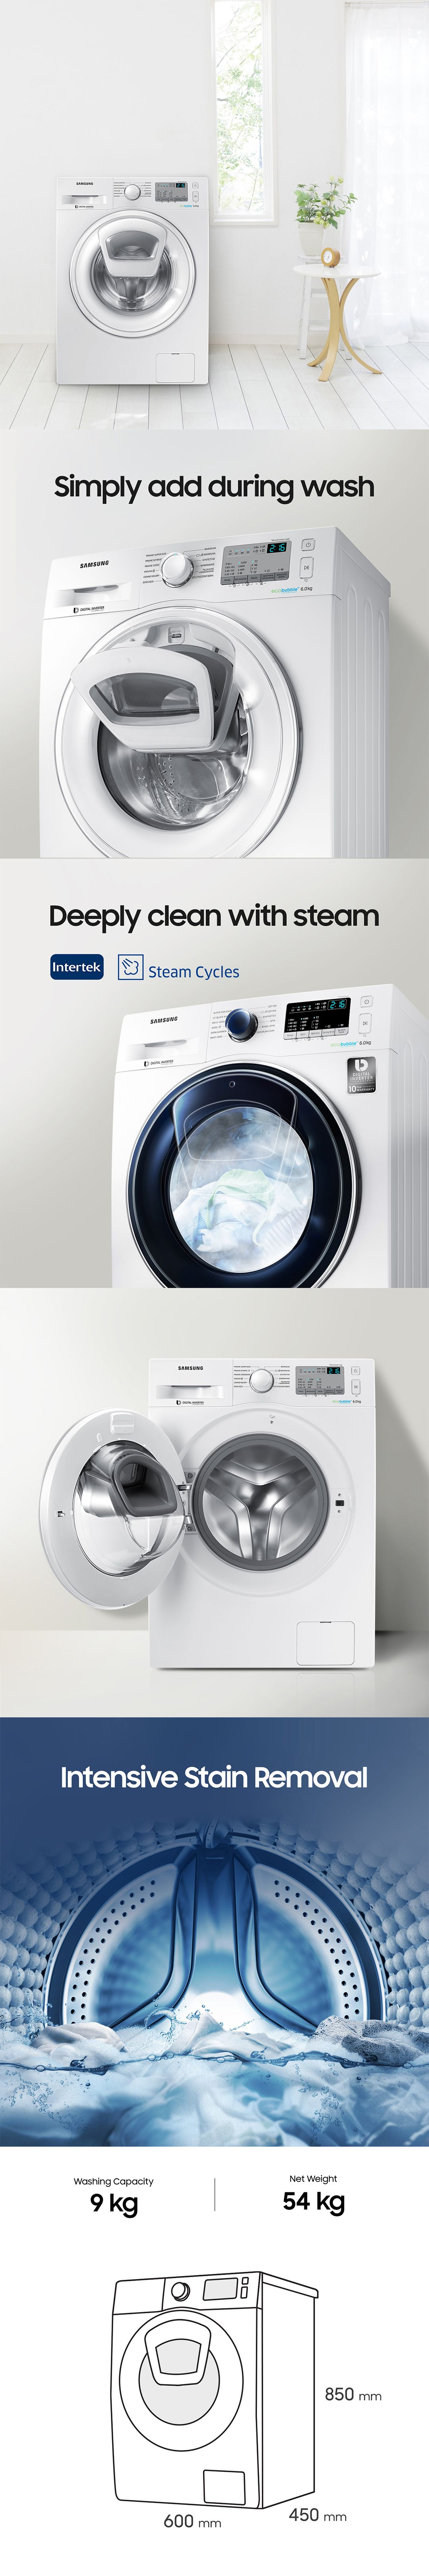 Pin On Laundry Interior Design